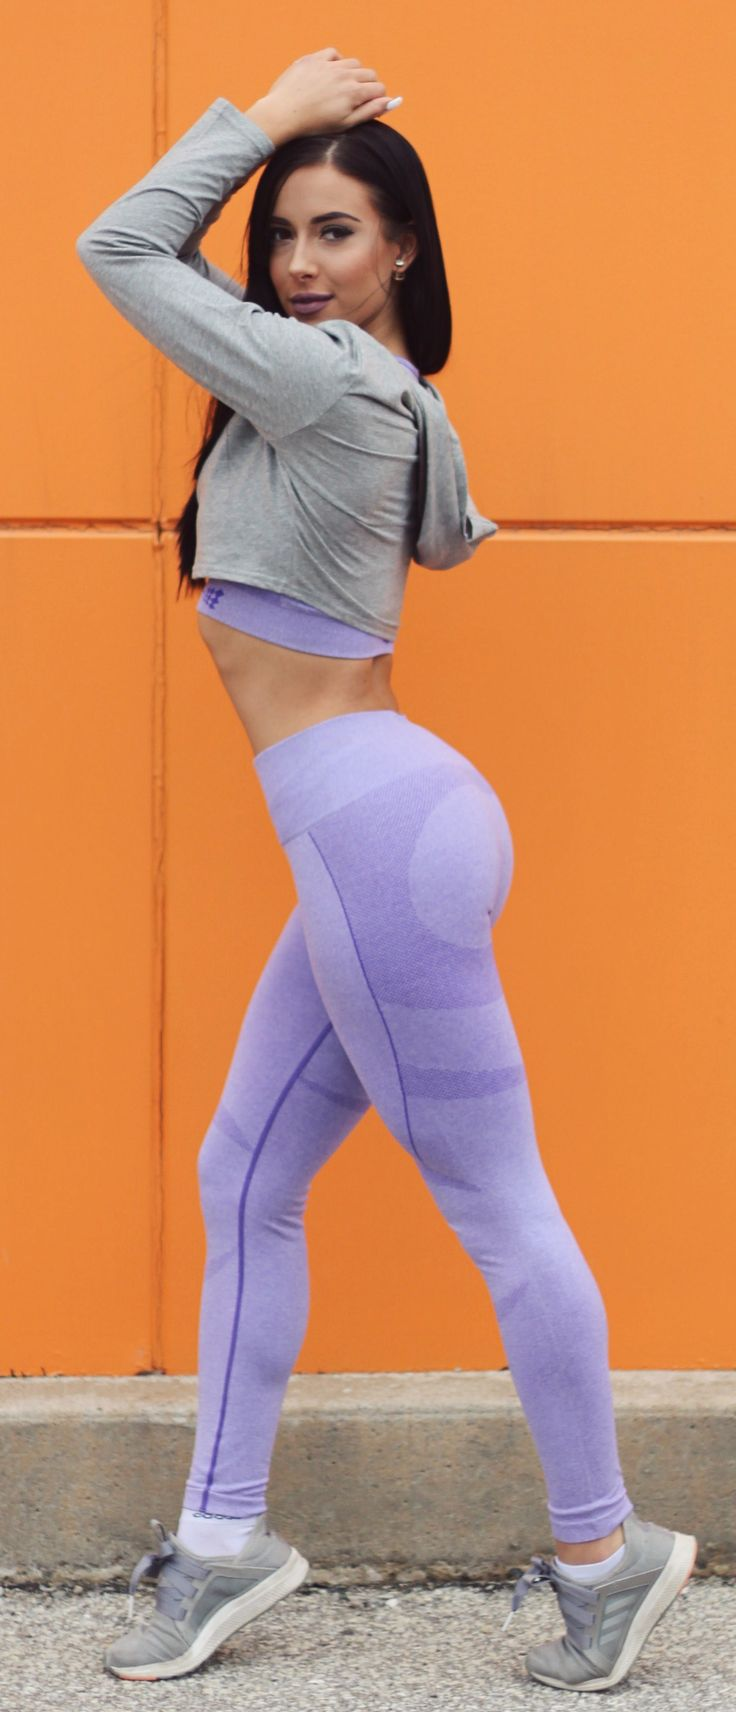 PURPLE supple seamless releasing soon! Head over to our website for the other colors! #Leggings #workoutmotivation #fitnessaparel